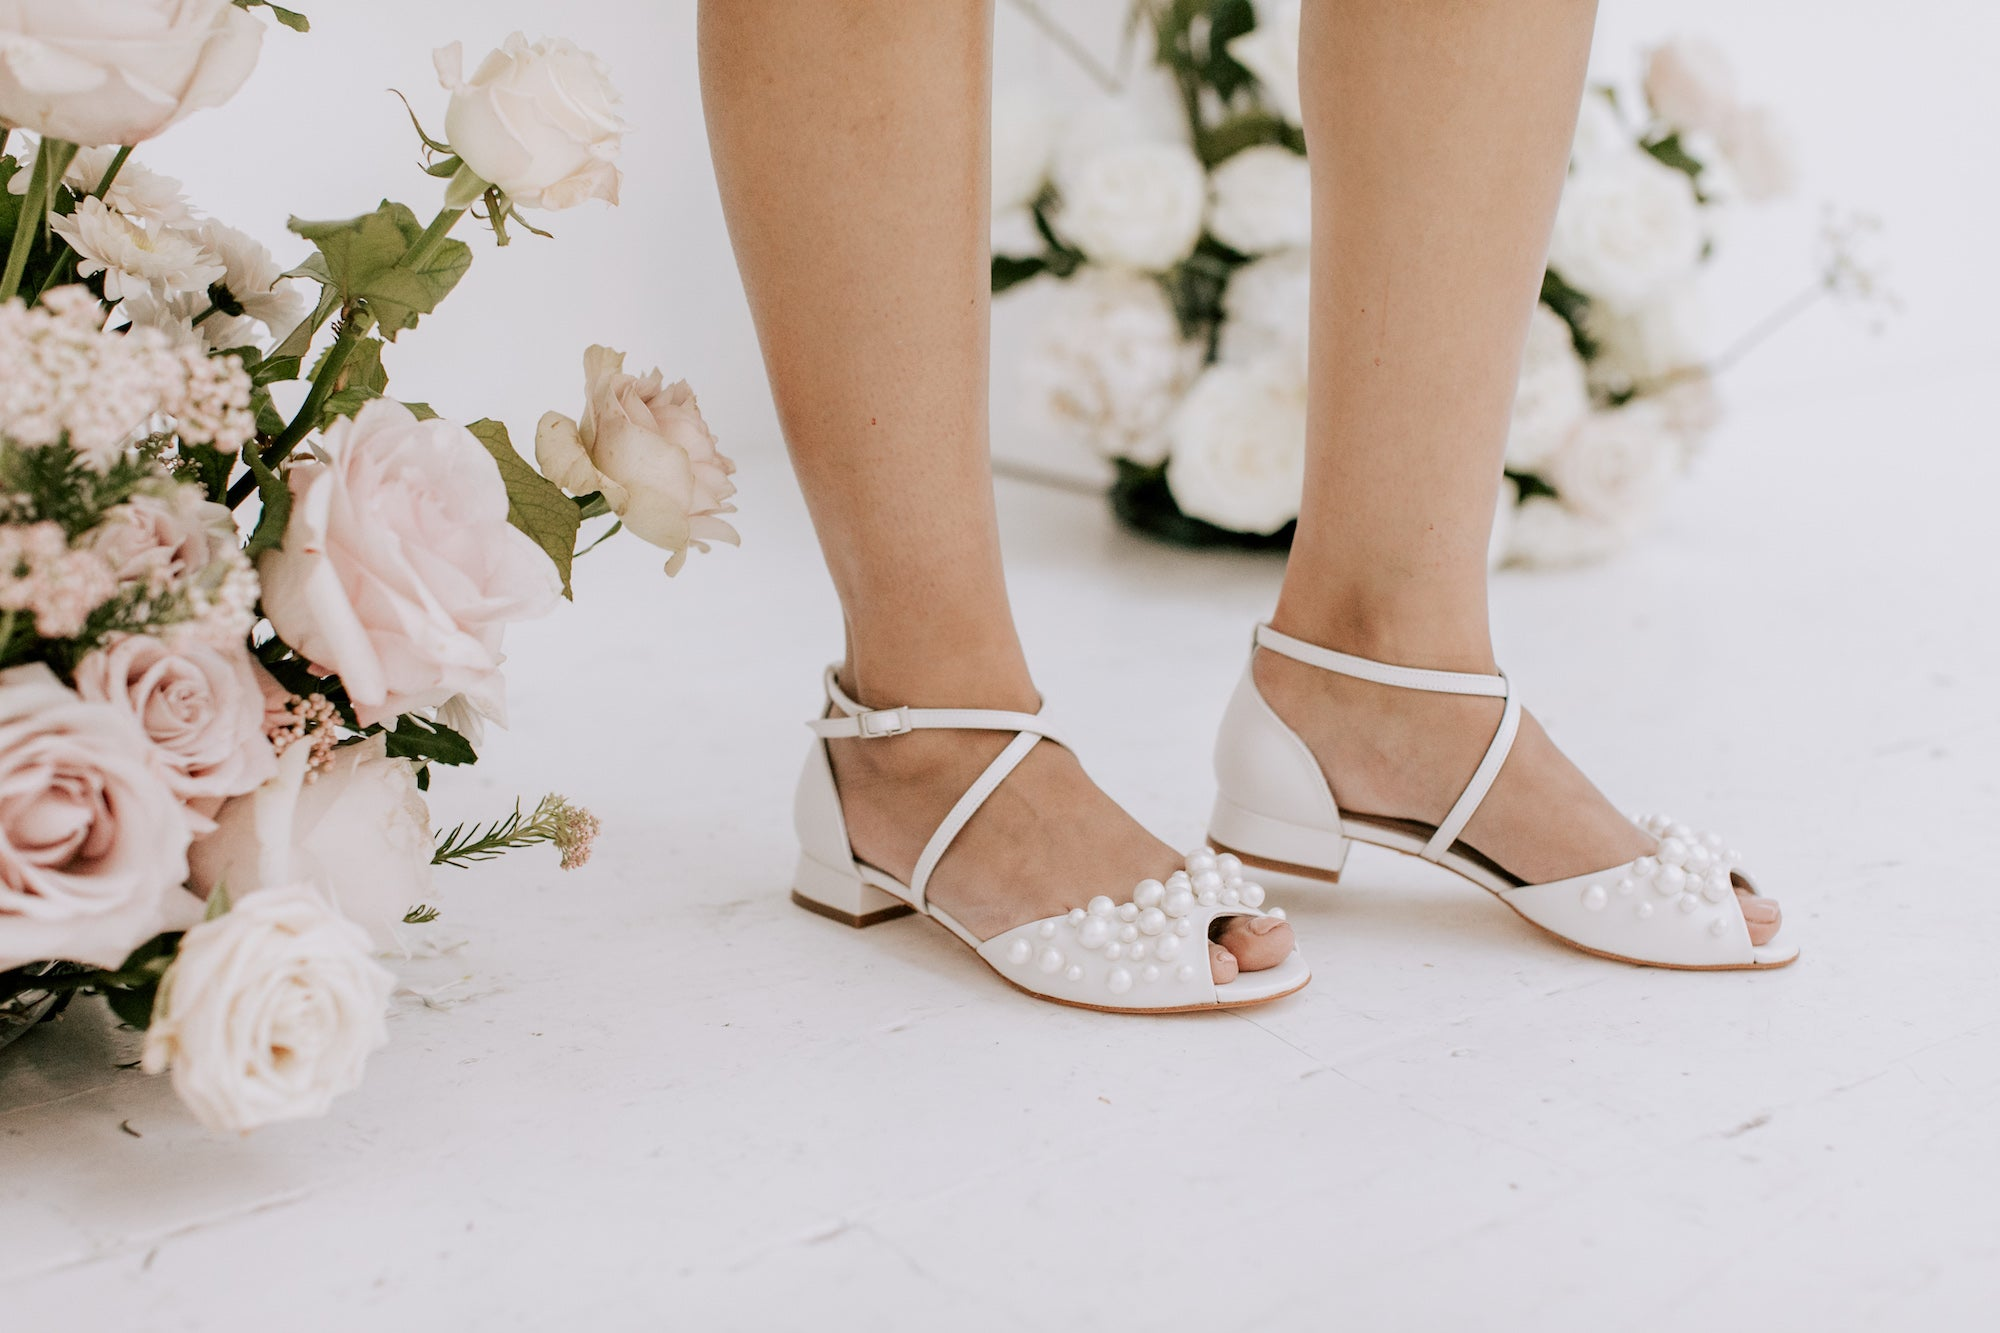 flat wedding shoes to wear on beach